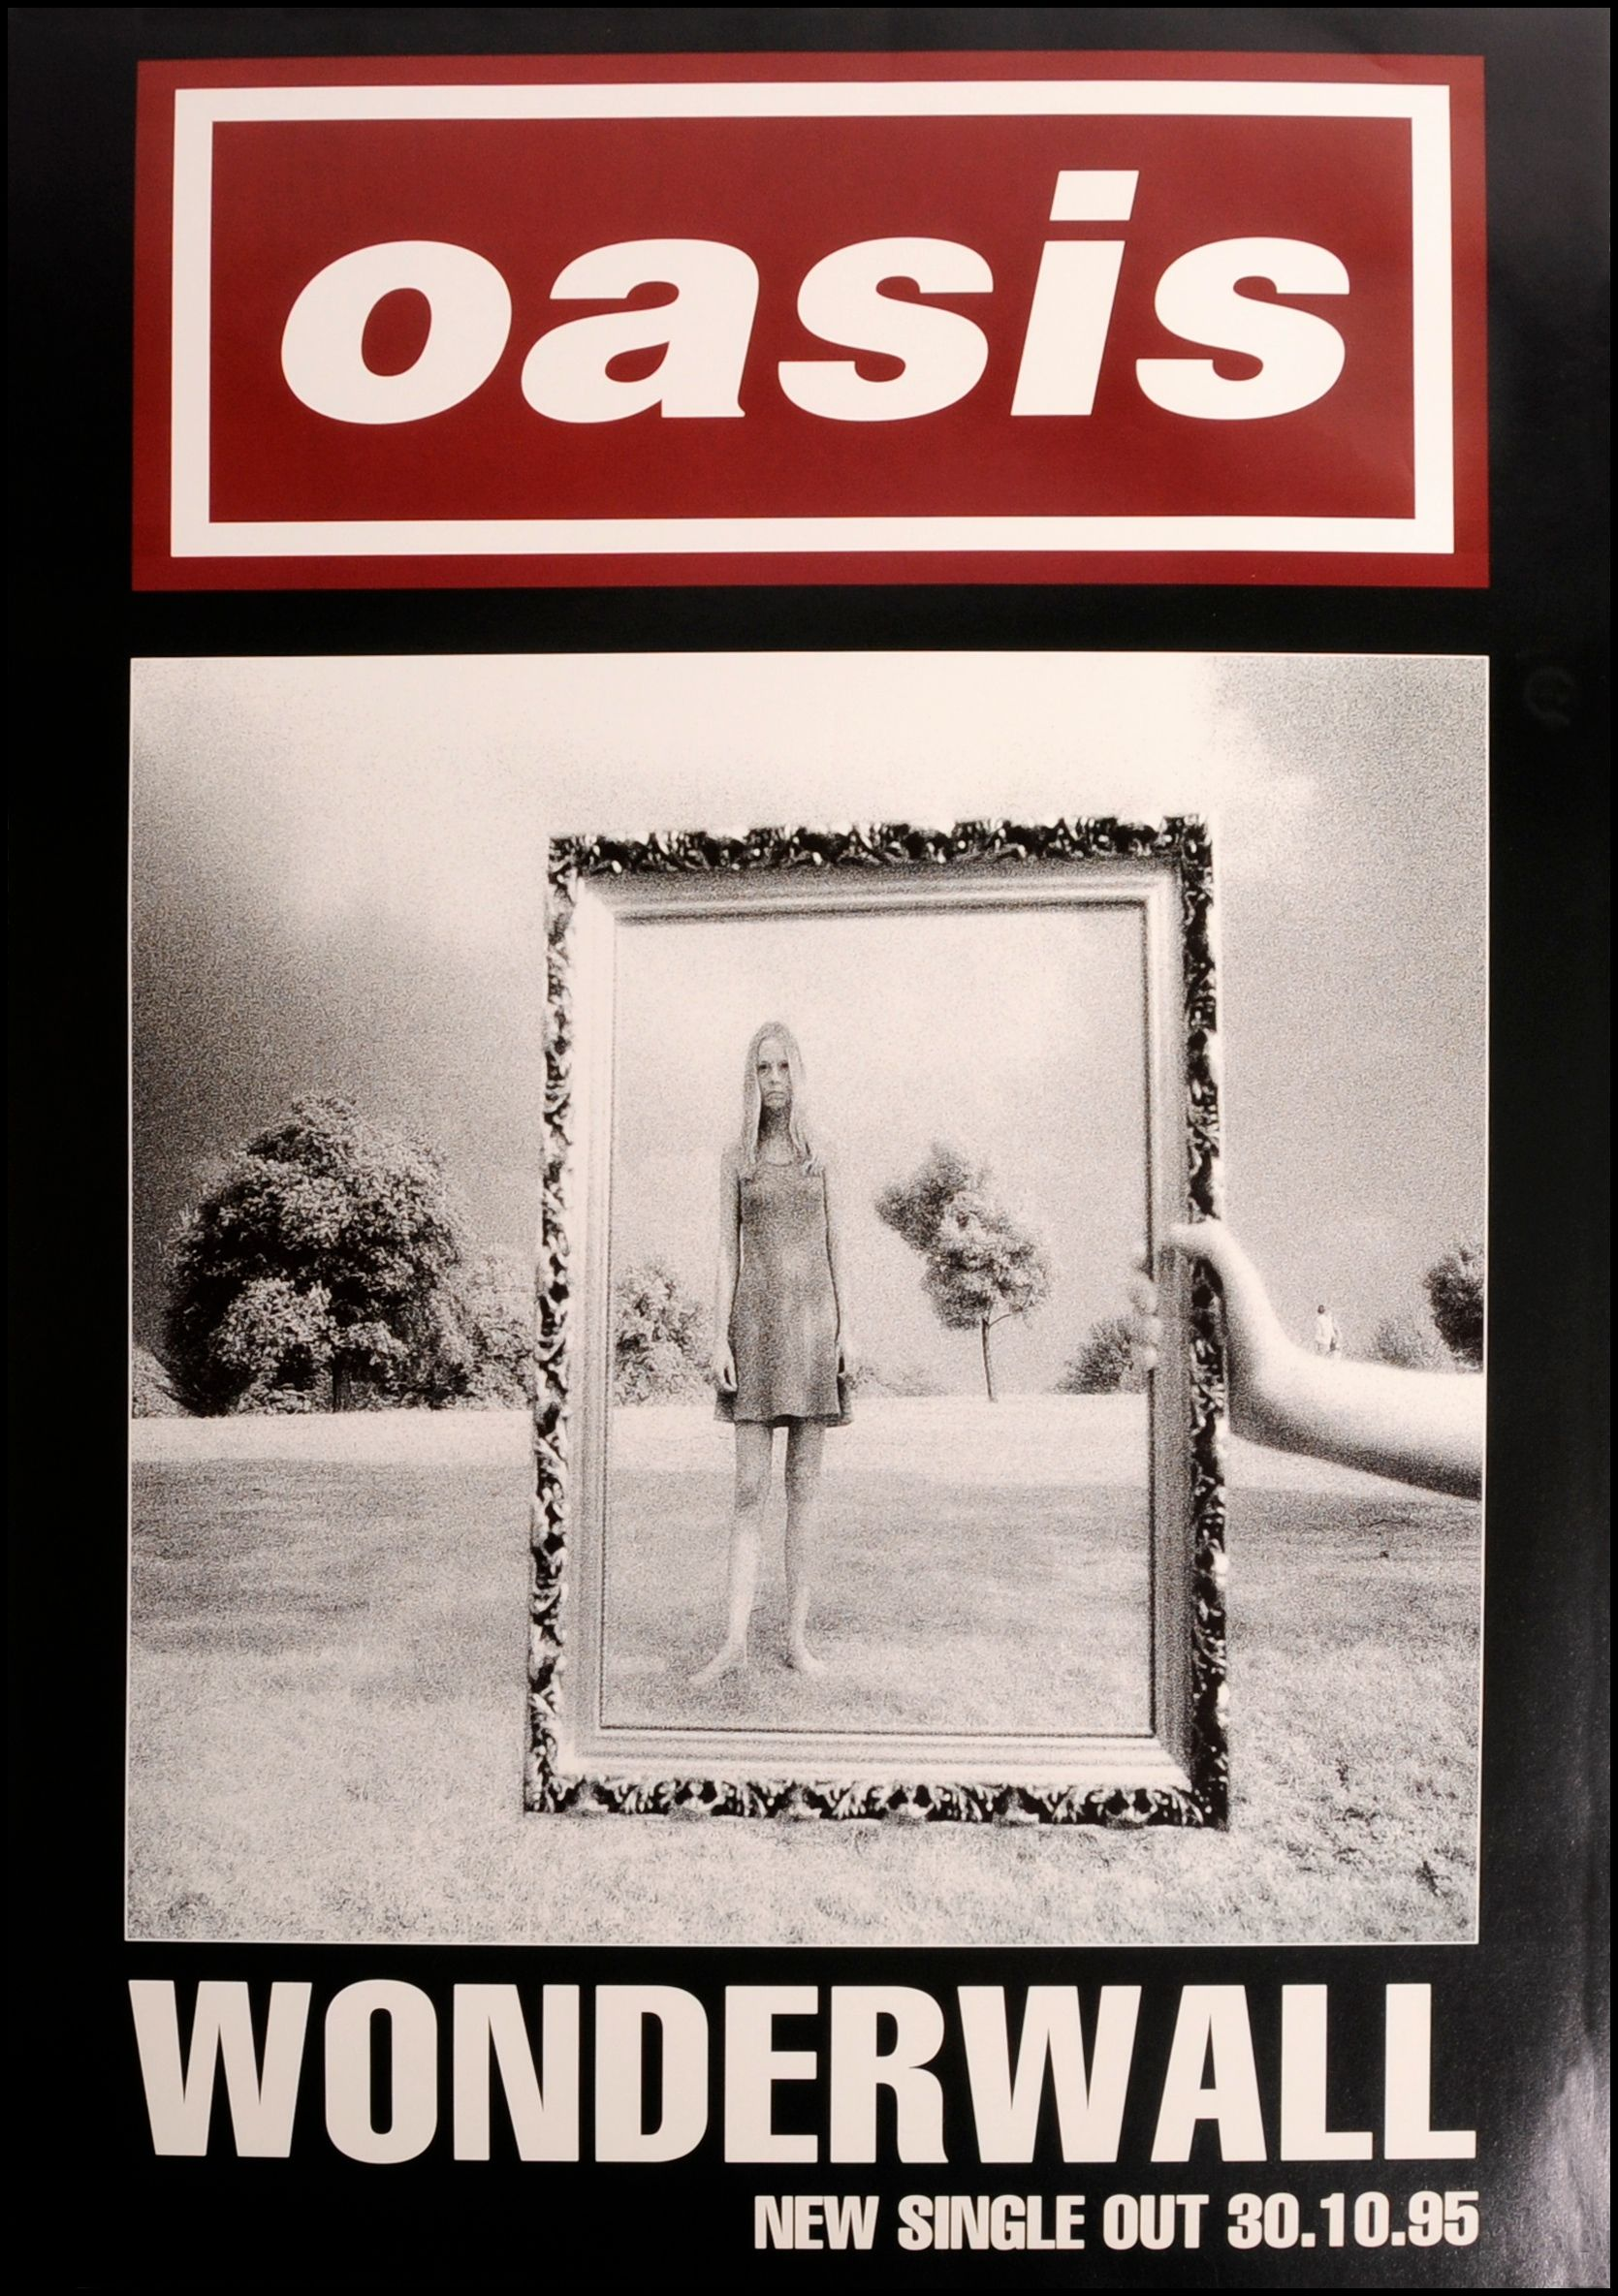 Oasis - Wonderwall | Musicians and Bands | Oasis, Oasis ... Oasis Band Album Cover